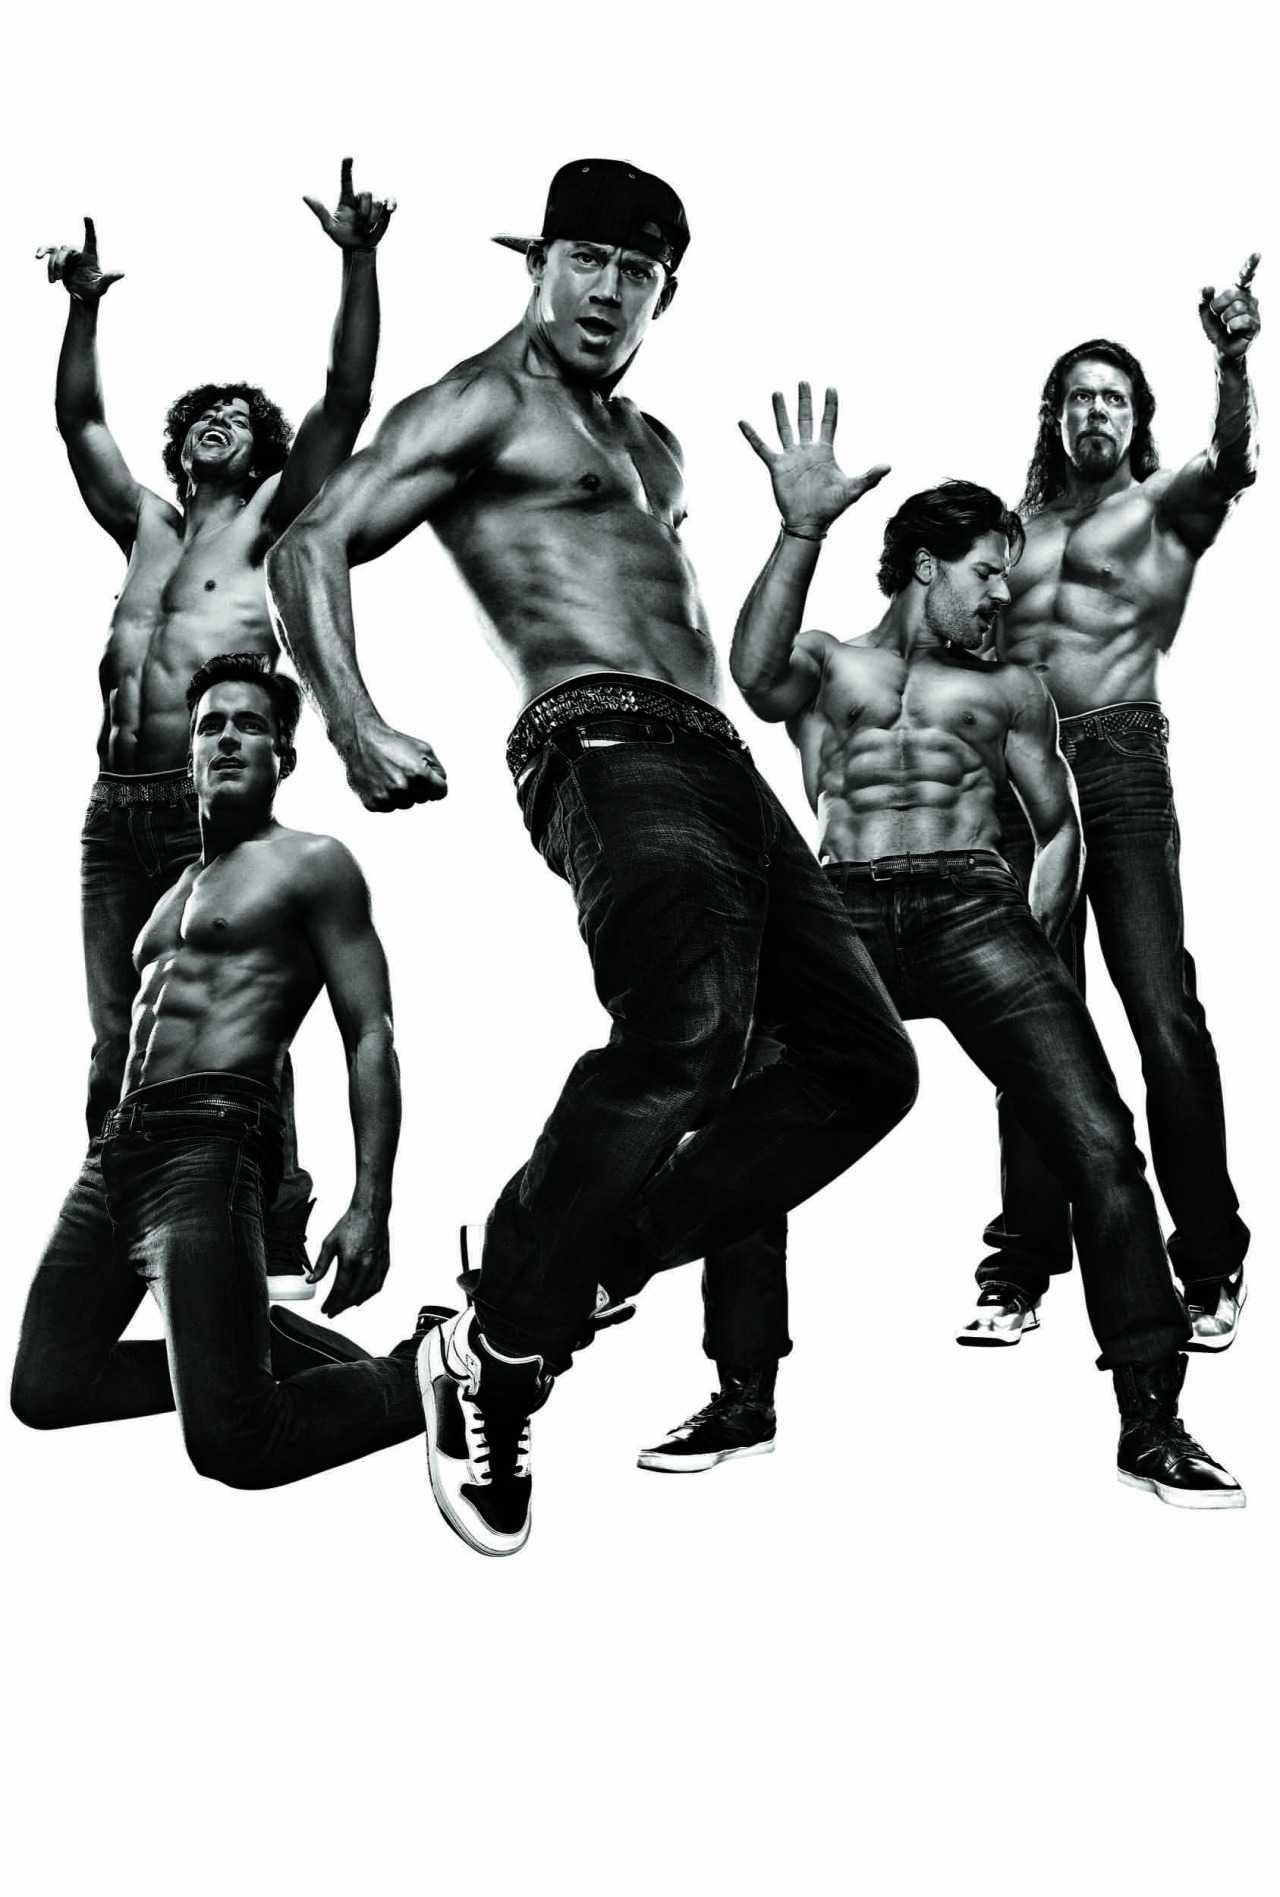 Loudinni Reviews Magic Mike XXL: Enjoy The Stud-Ploitation While You Can | Magic Mike XXL